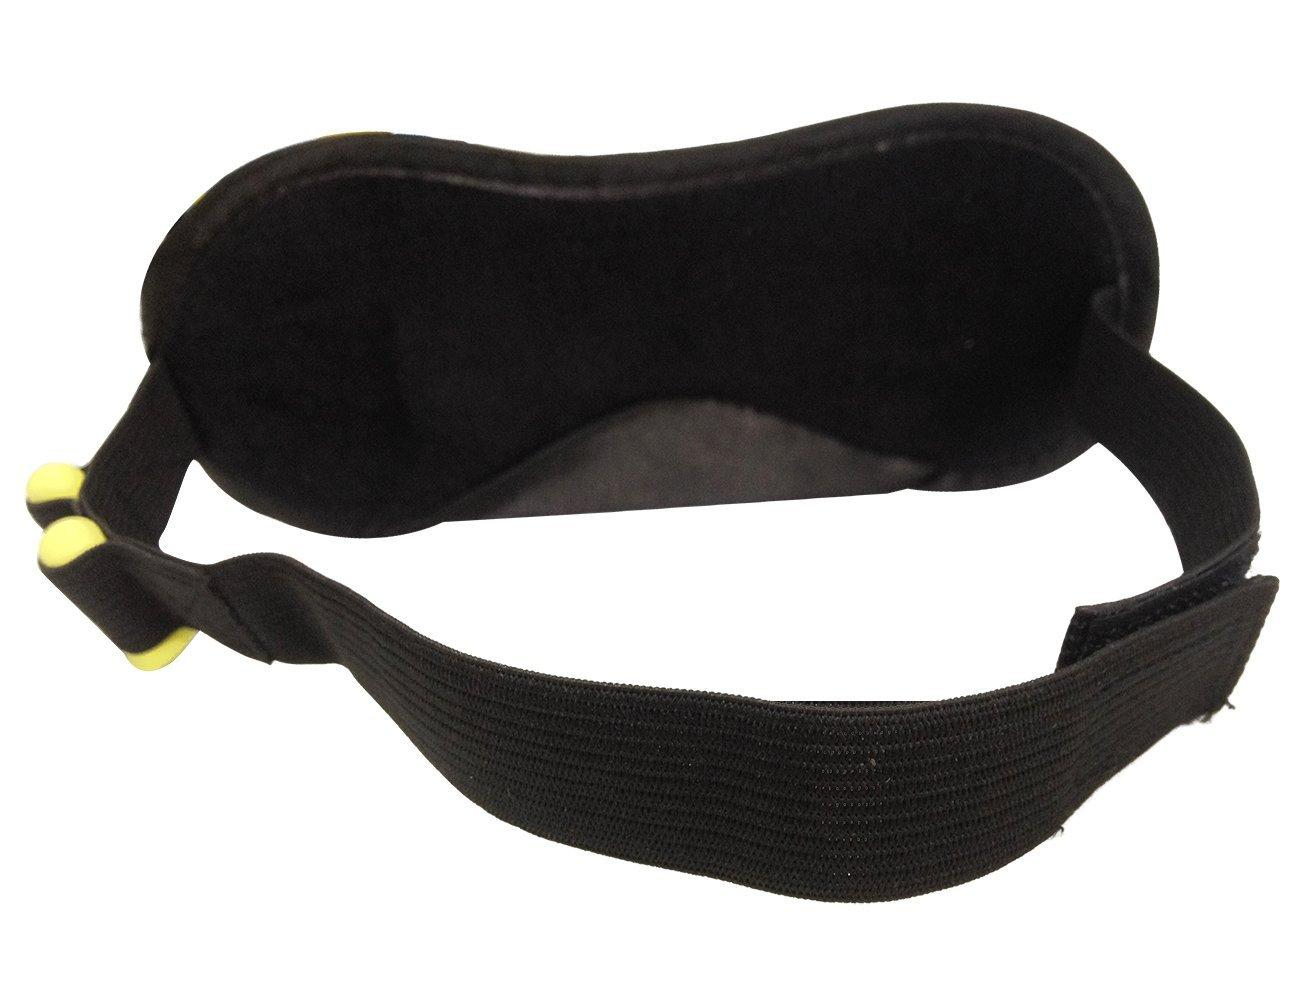 Attmu Sleep Mask and Blindfold, Sleep Eye Mask with Ear Plugs, Set of 2